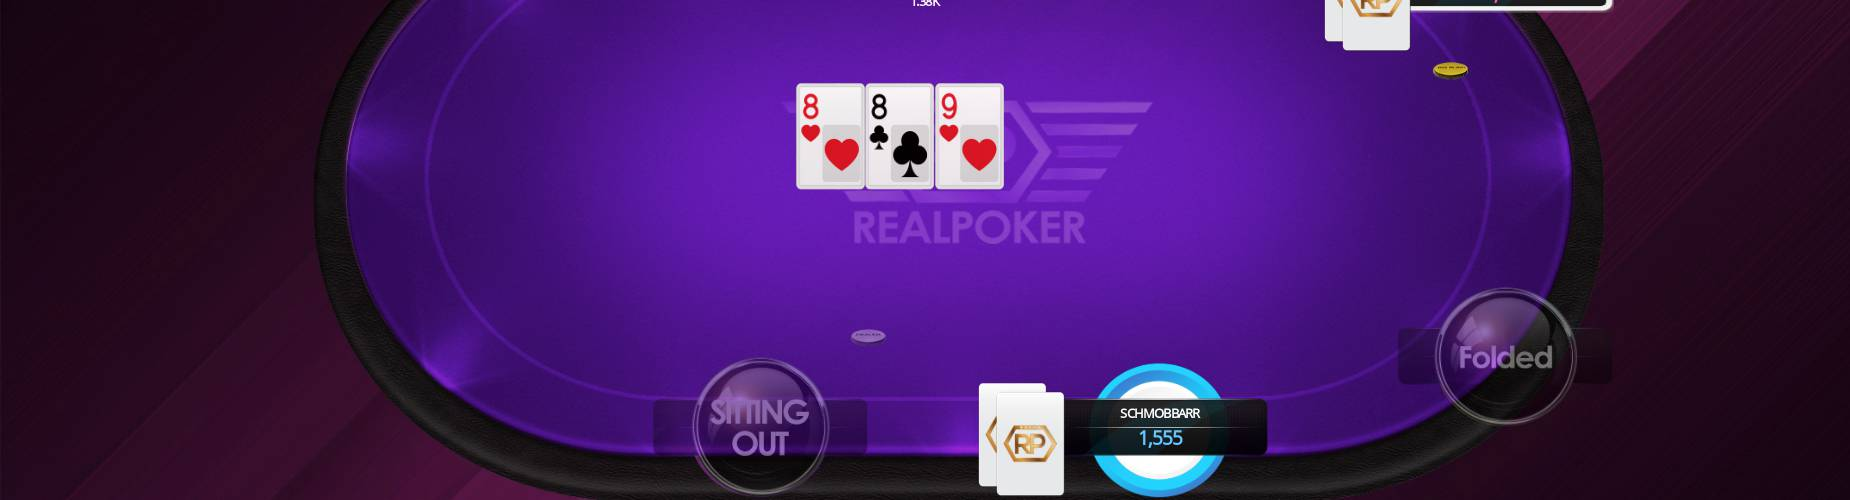 7 Stages of Becoming an Online Poker Pro at Realpoker.in